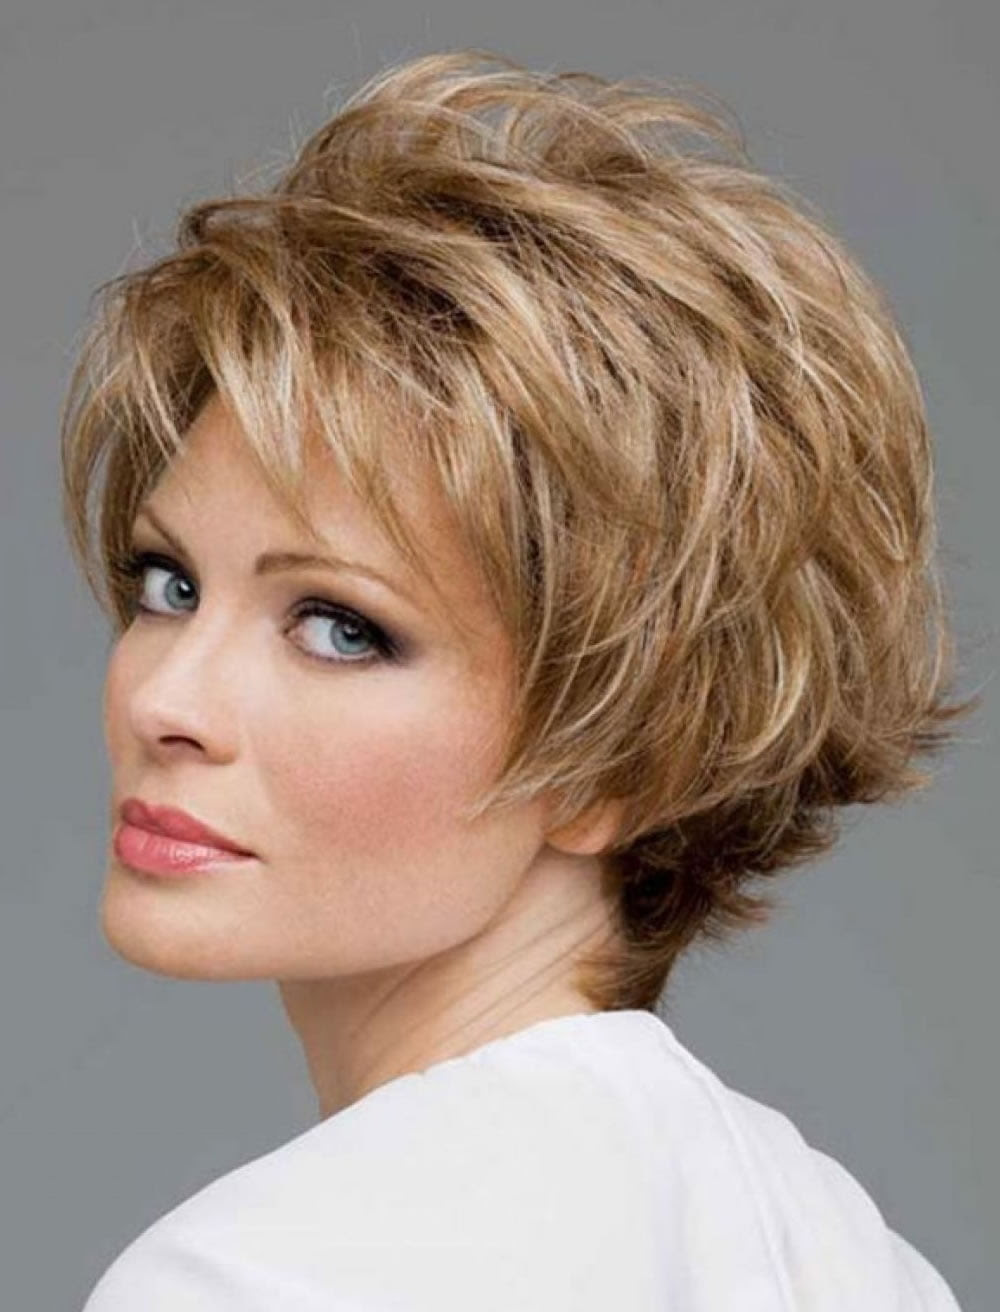 2018 Pixie Hairstyles And Haircuts For Women Over 40 To 60 Page 3 Of